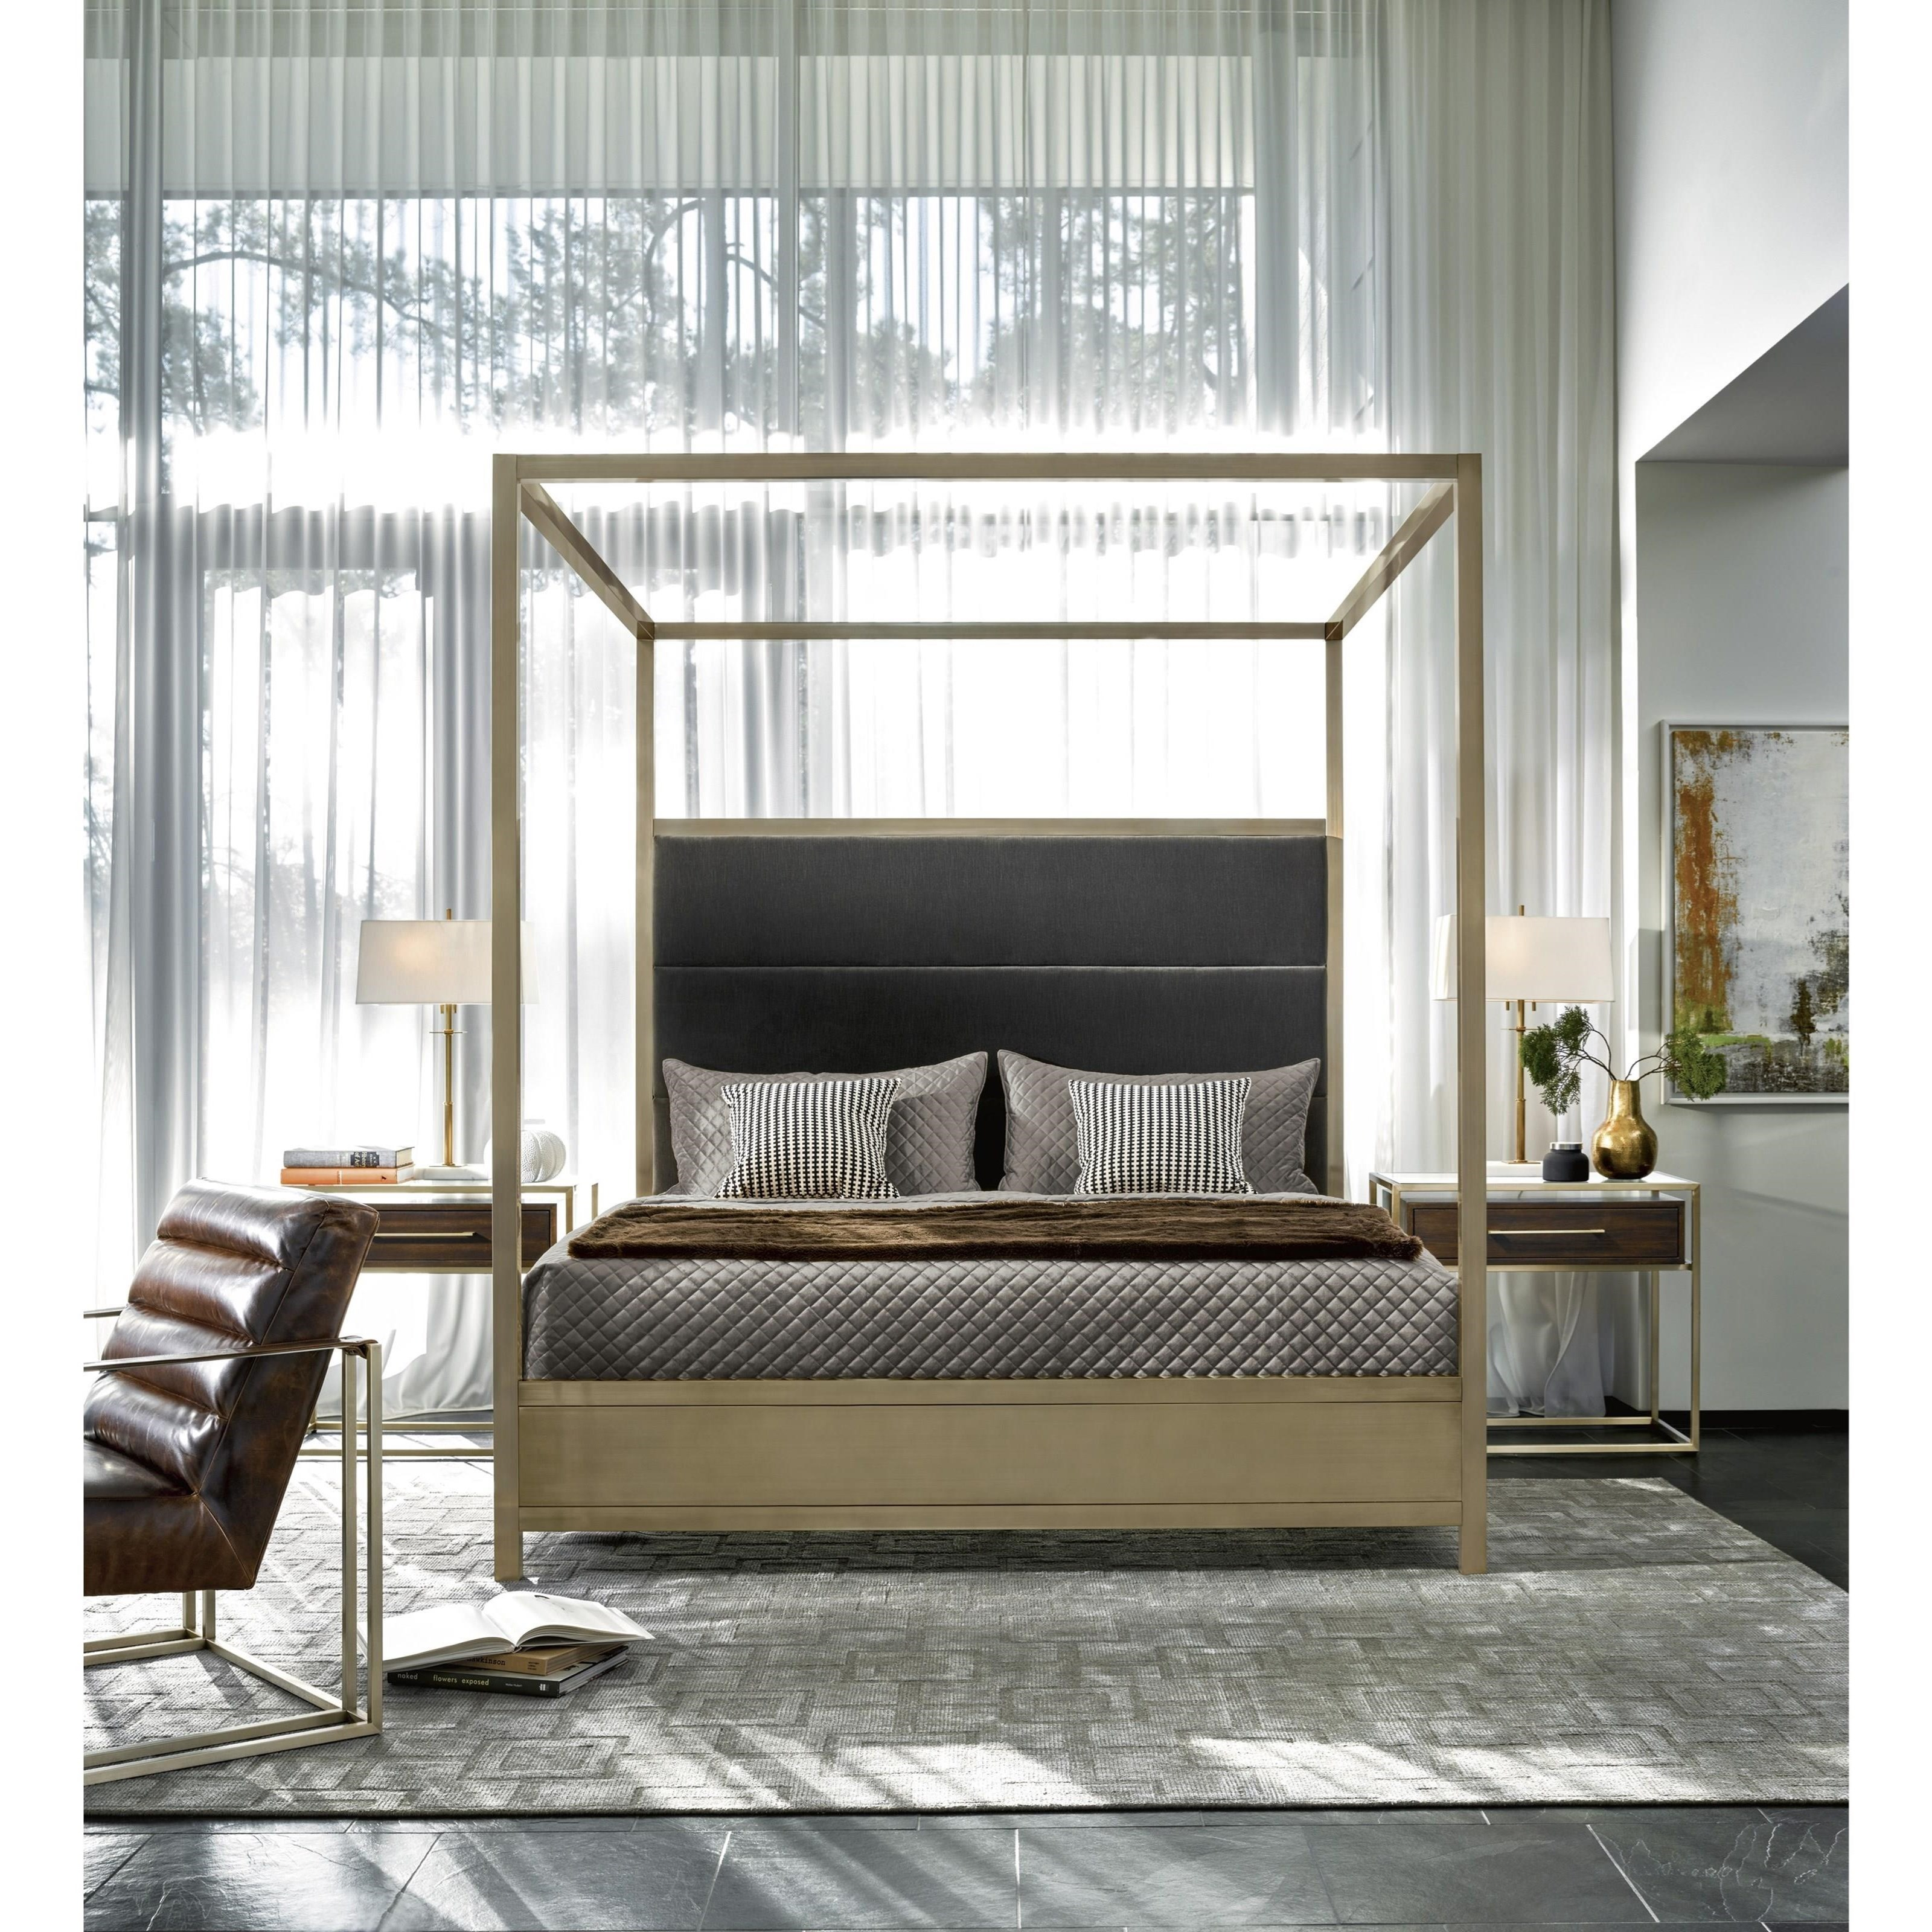 Canopy Style Bed Available For Order In These Wood Colours: Universal Modern Harlow Cal King Canopy Bed With Brushed